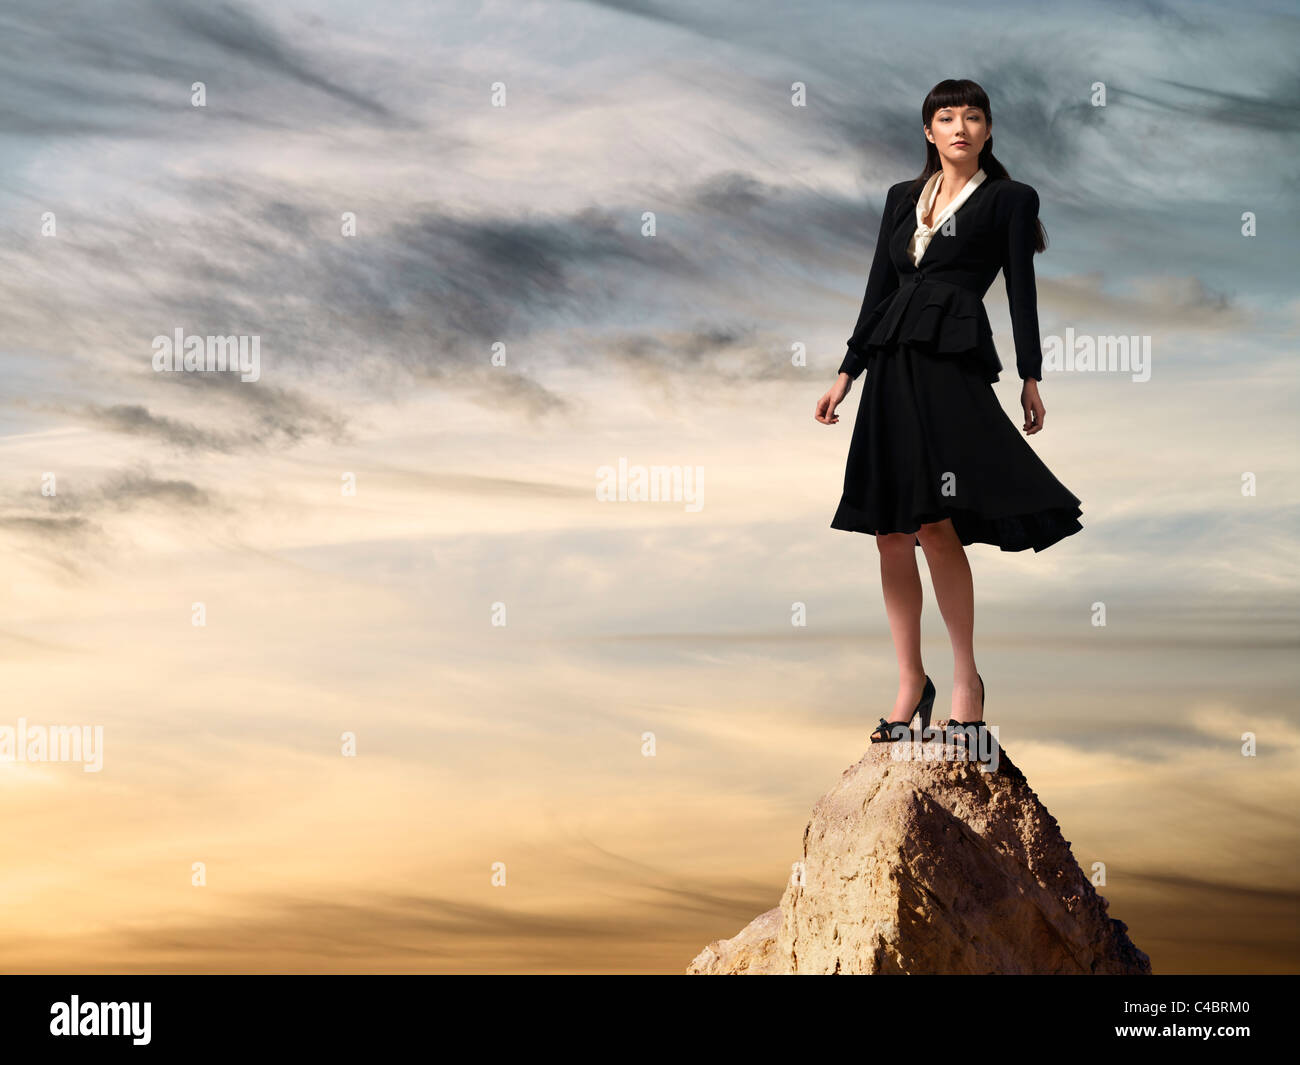 Asian business woman standing on mountaintop at sunset - Stock Image